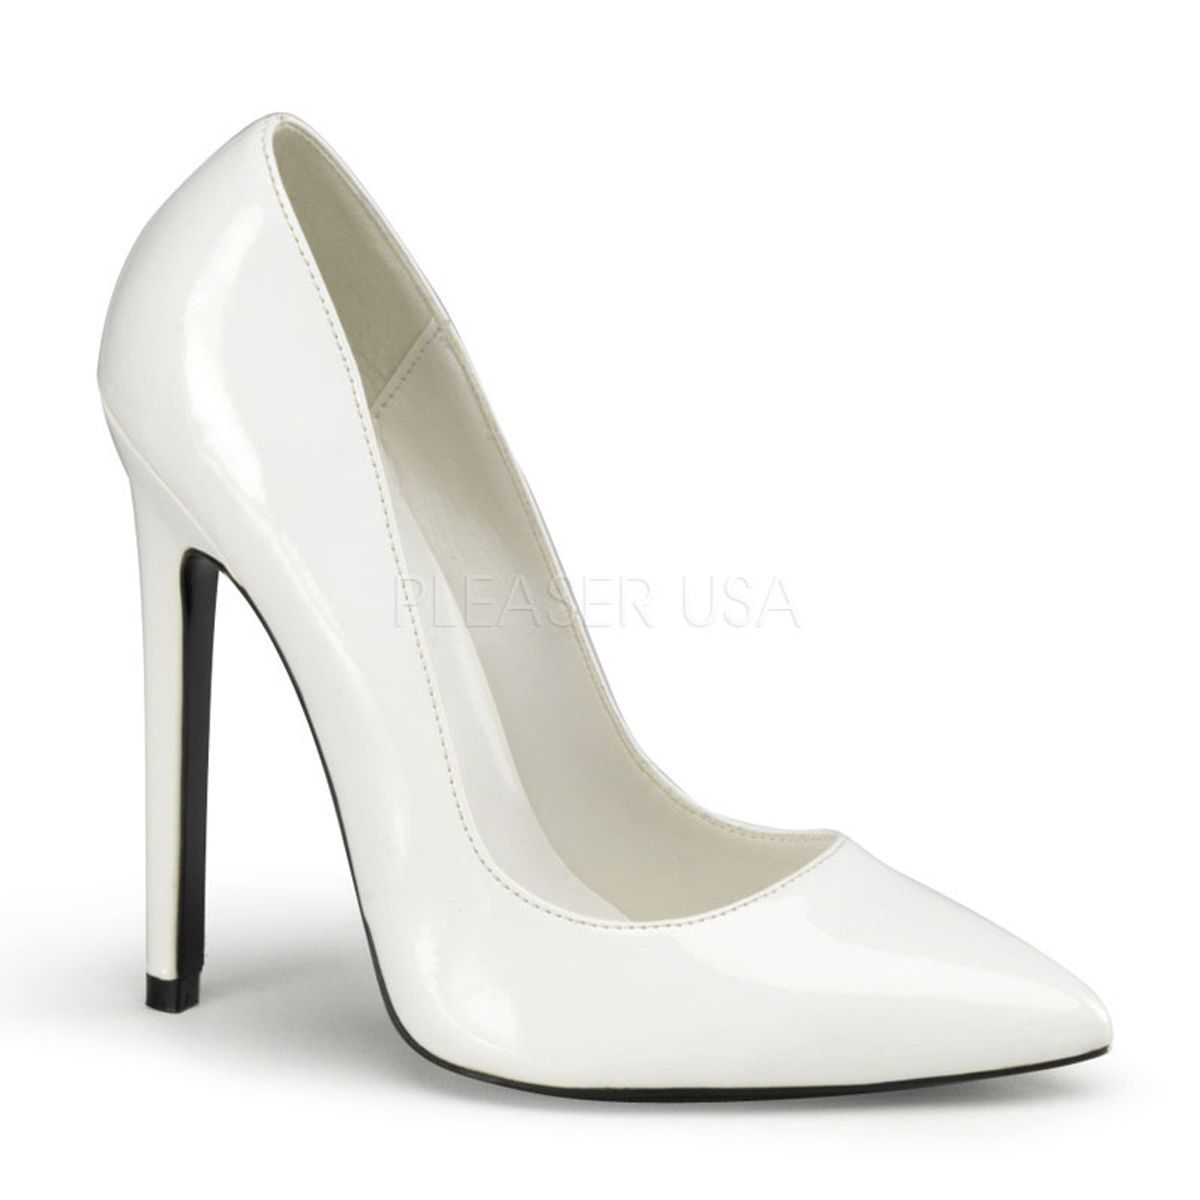 4c59fac919f1 Pleaser Devious Women s  Sexy-20  Patent Faux Pointed Toe Pumps ...